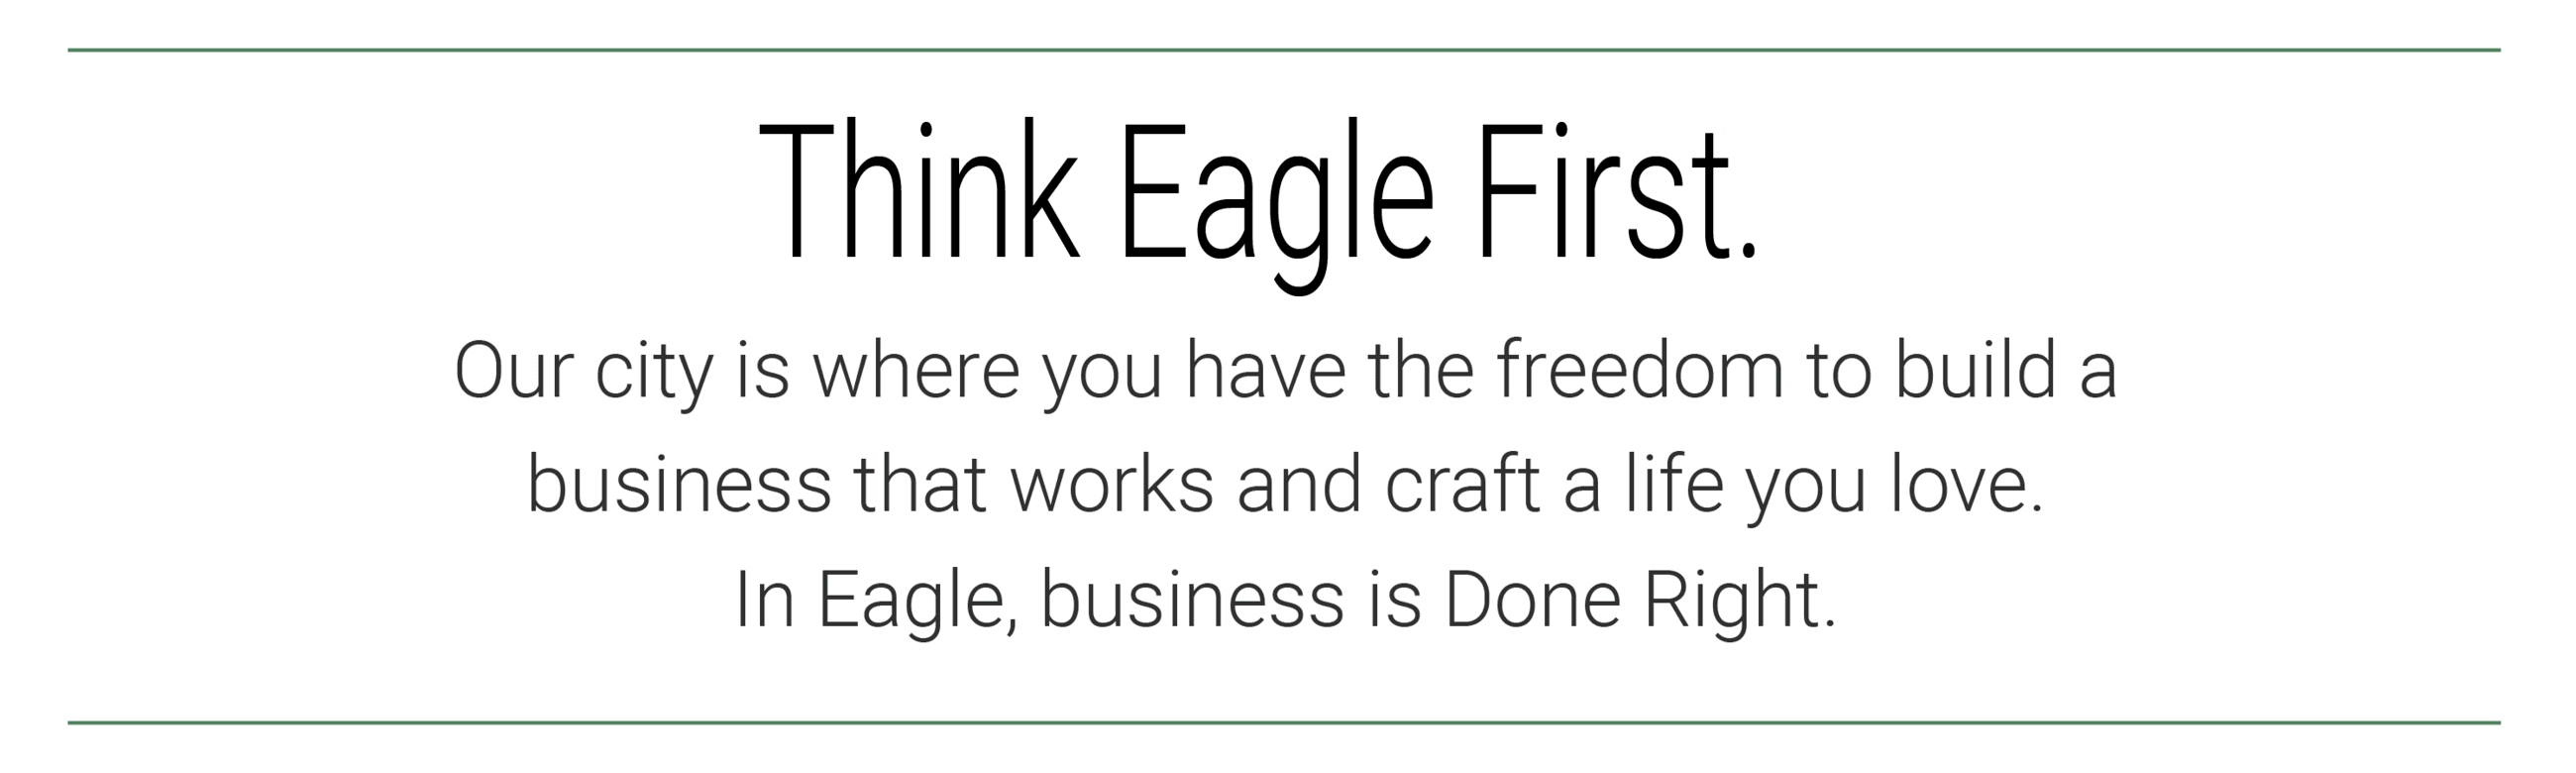 Think Eagle First